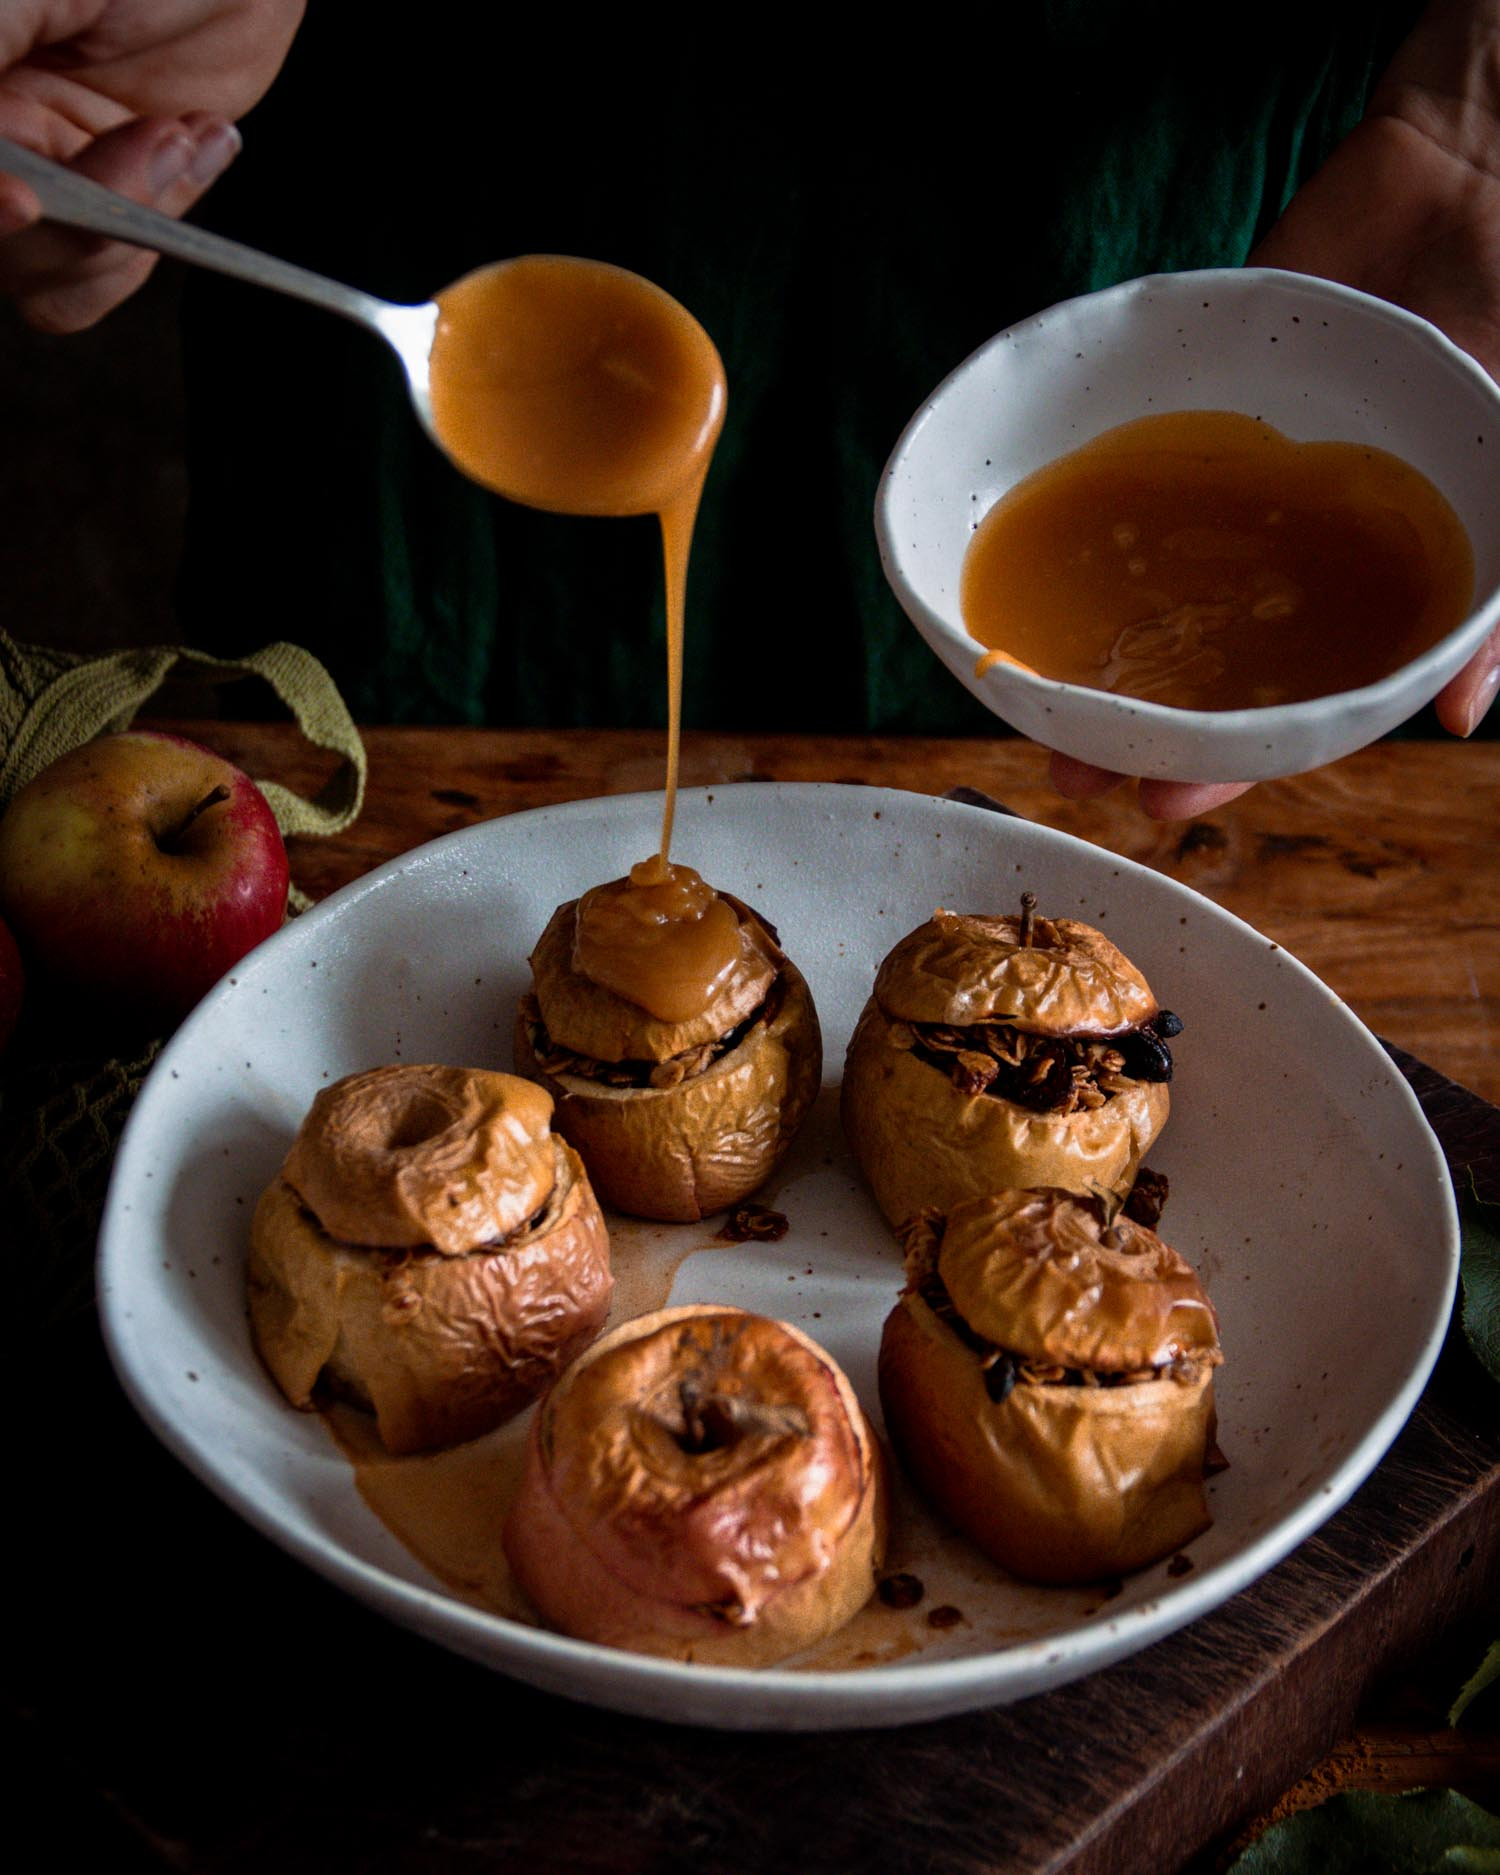 Apples baked in a Winterwares family bowl, with caramel sauce drizzled on top